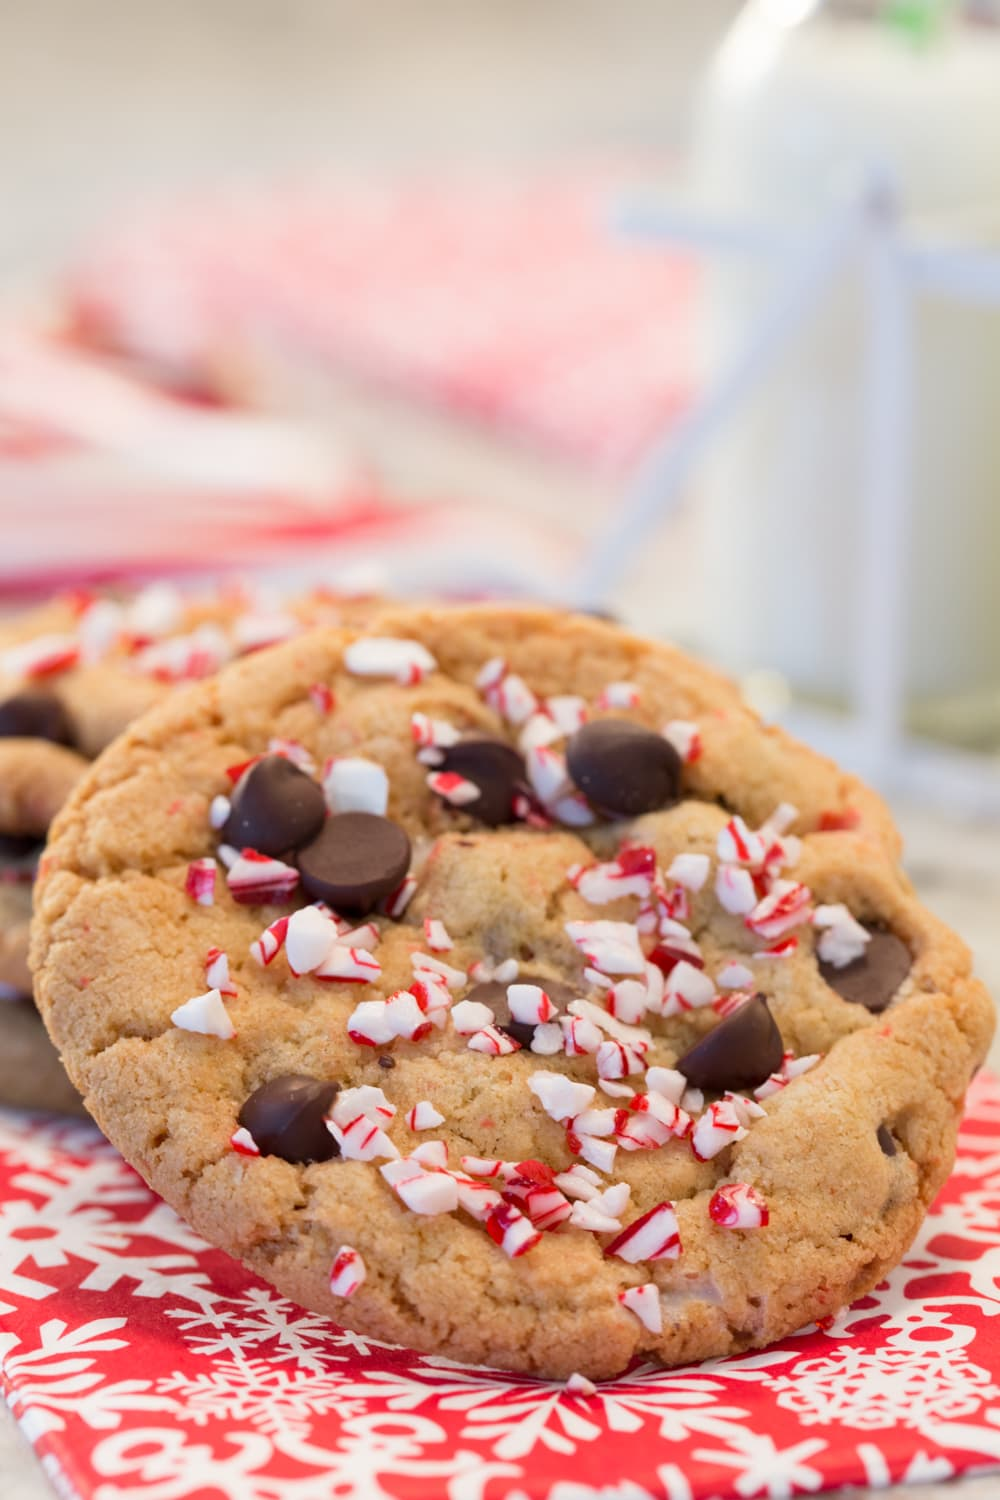 With lots of chocolate chips and crushed peppermint both inside and as a pretty topping, these Easy Candy Cane Chocolate Chip Cookies will disappeared like hotcakes!